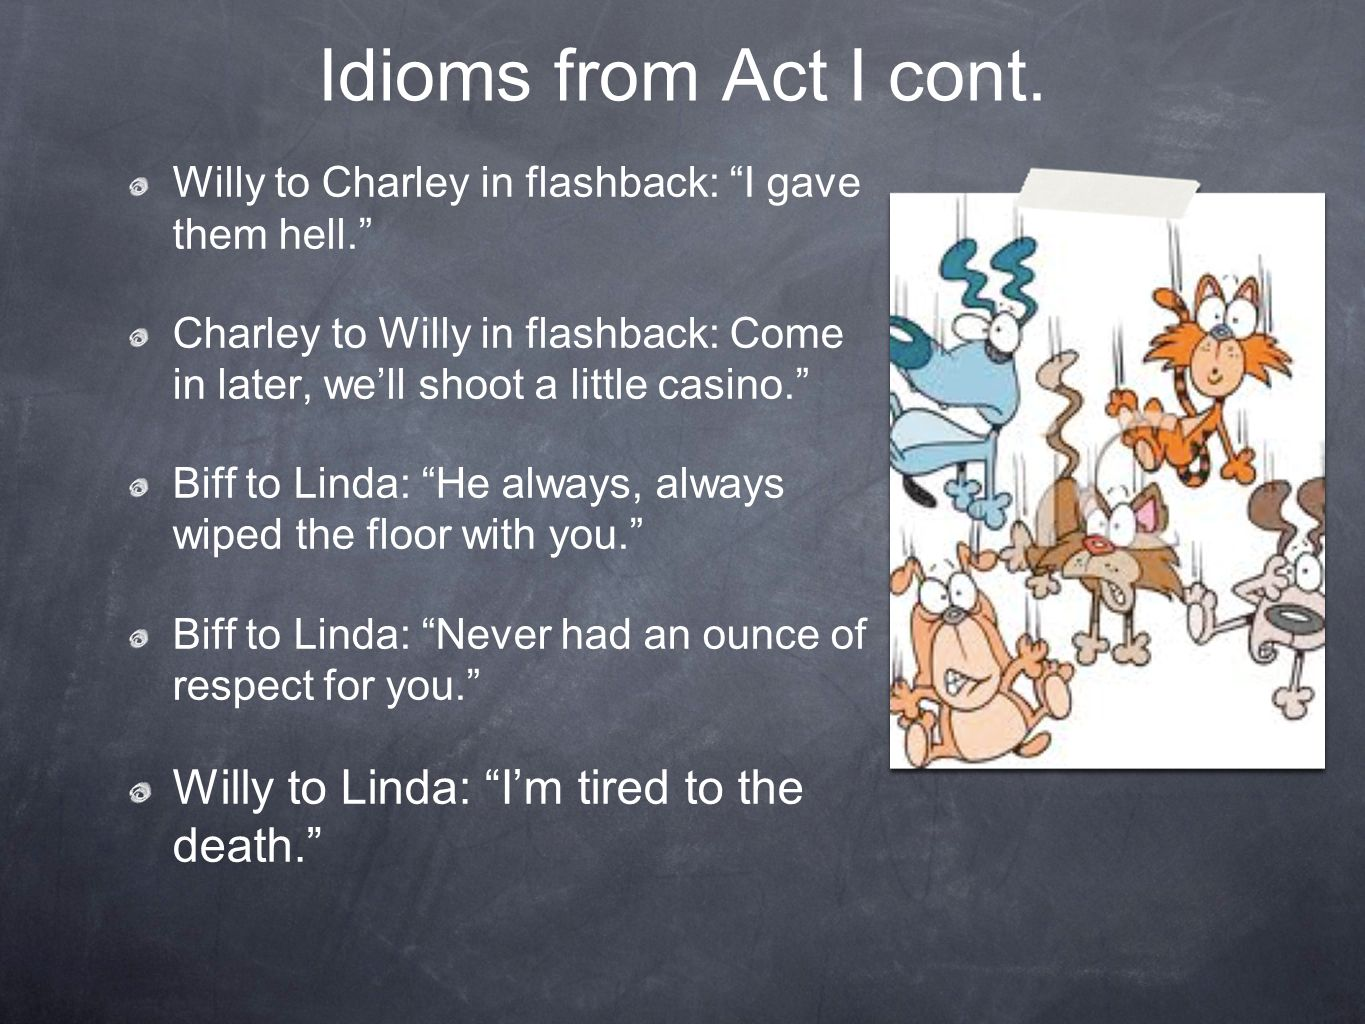 Idioms from Act I cont. Willy to Charley in flashback: I gave them hell. Charley to Willy in flashback: Come in later, well shoot a little casino. Bif